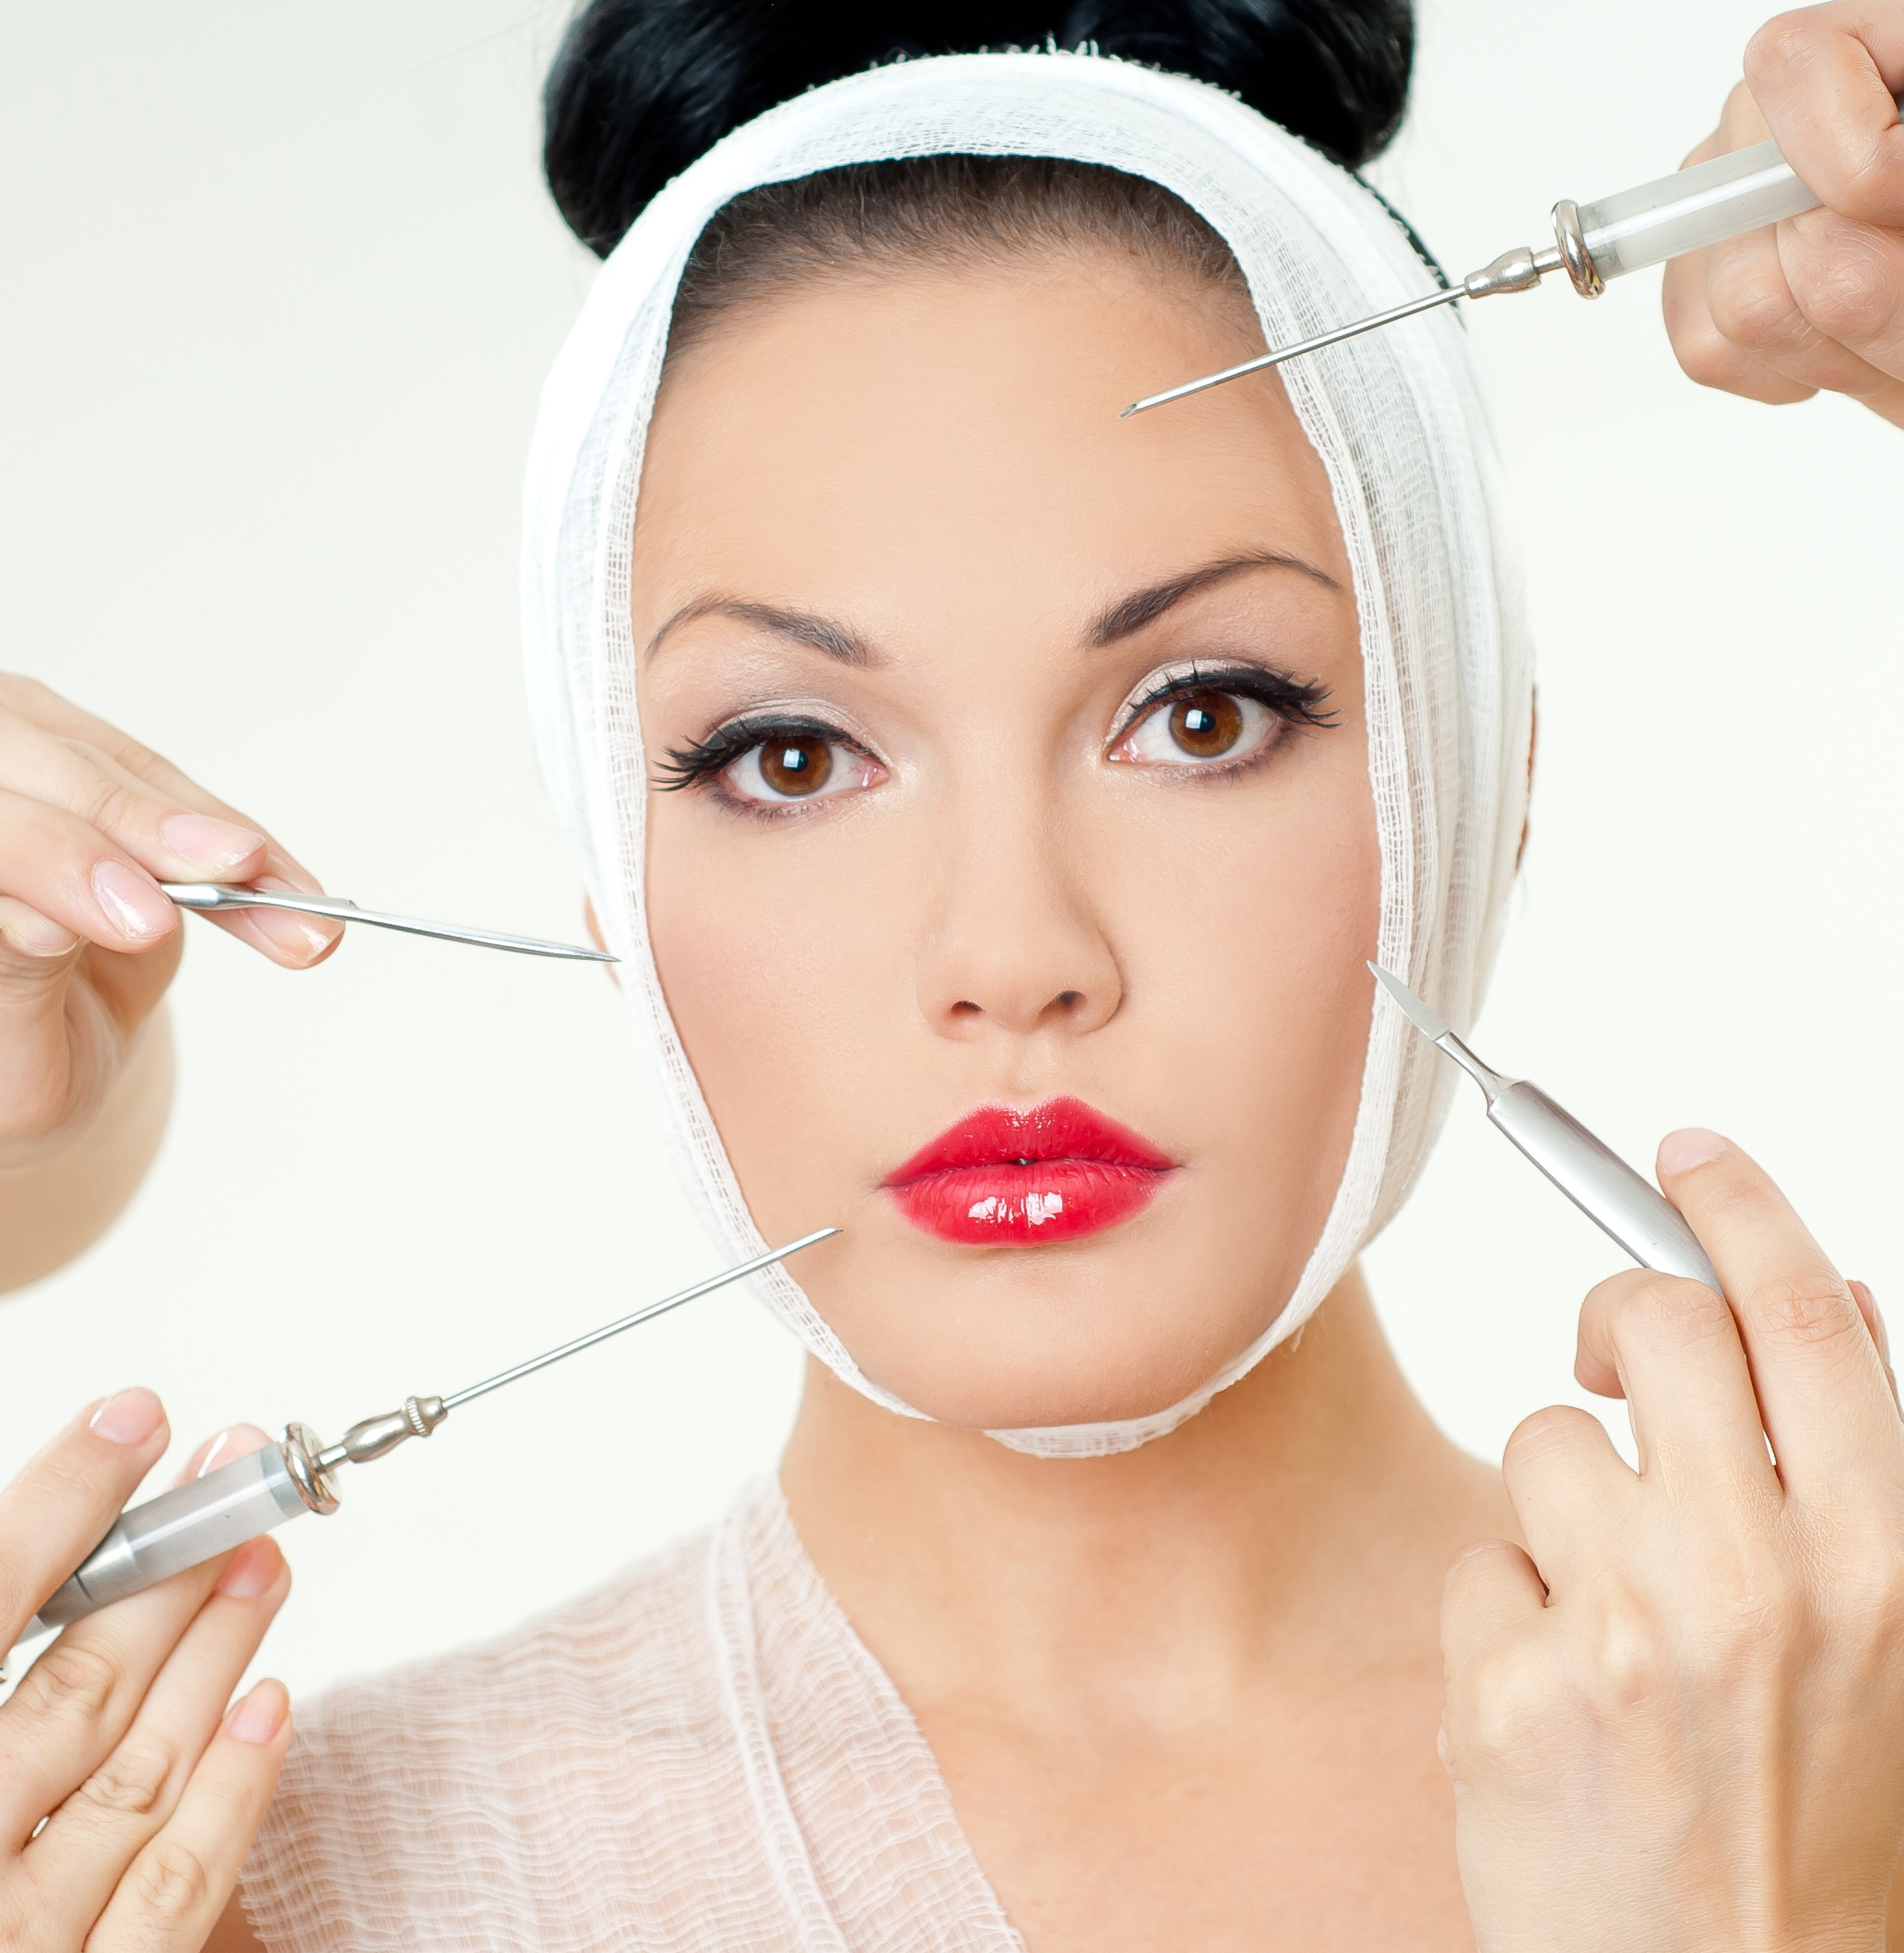 1 In 5 American Women Consider Plastic Surgery: Body Image ...